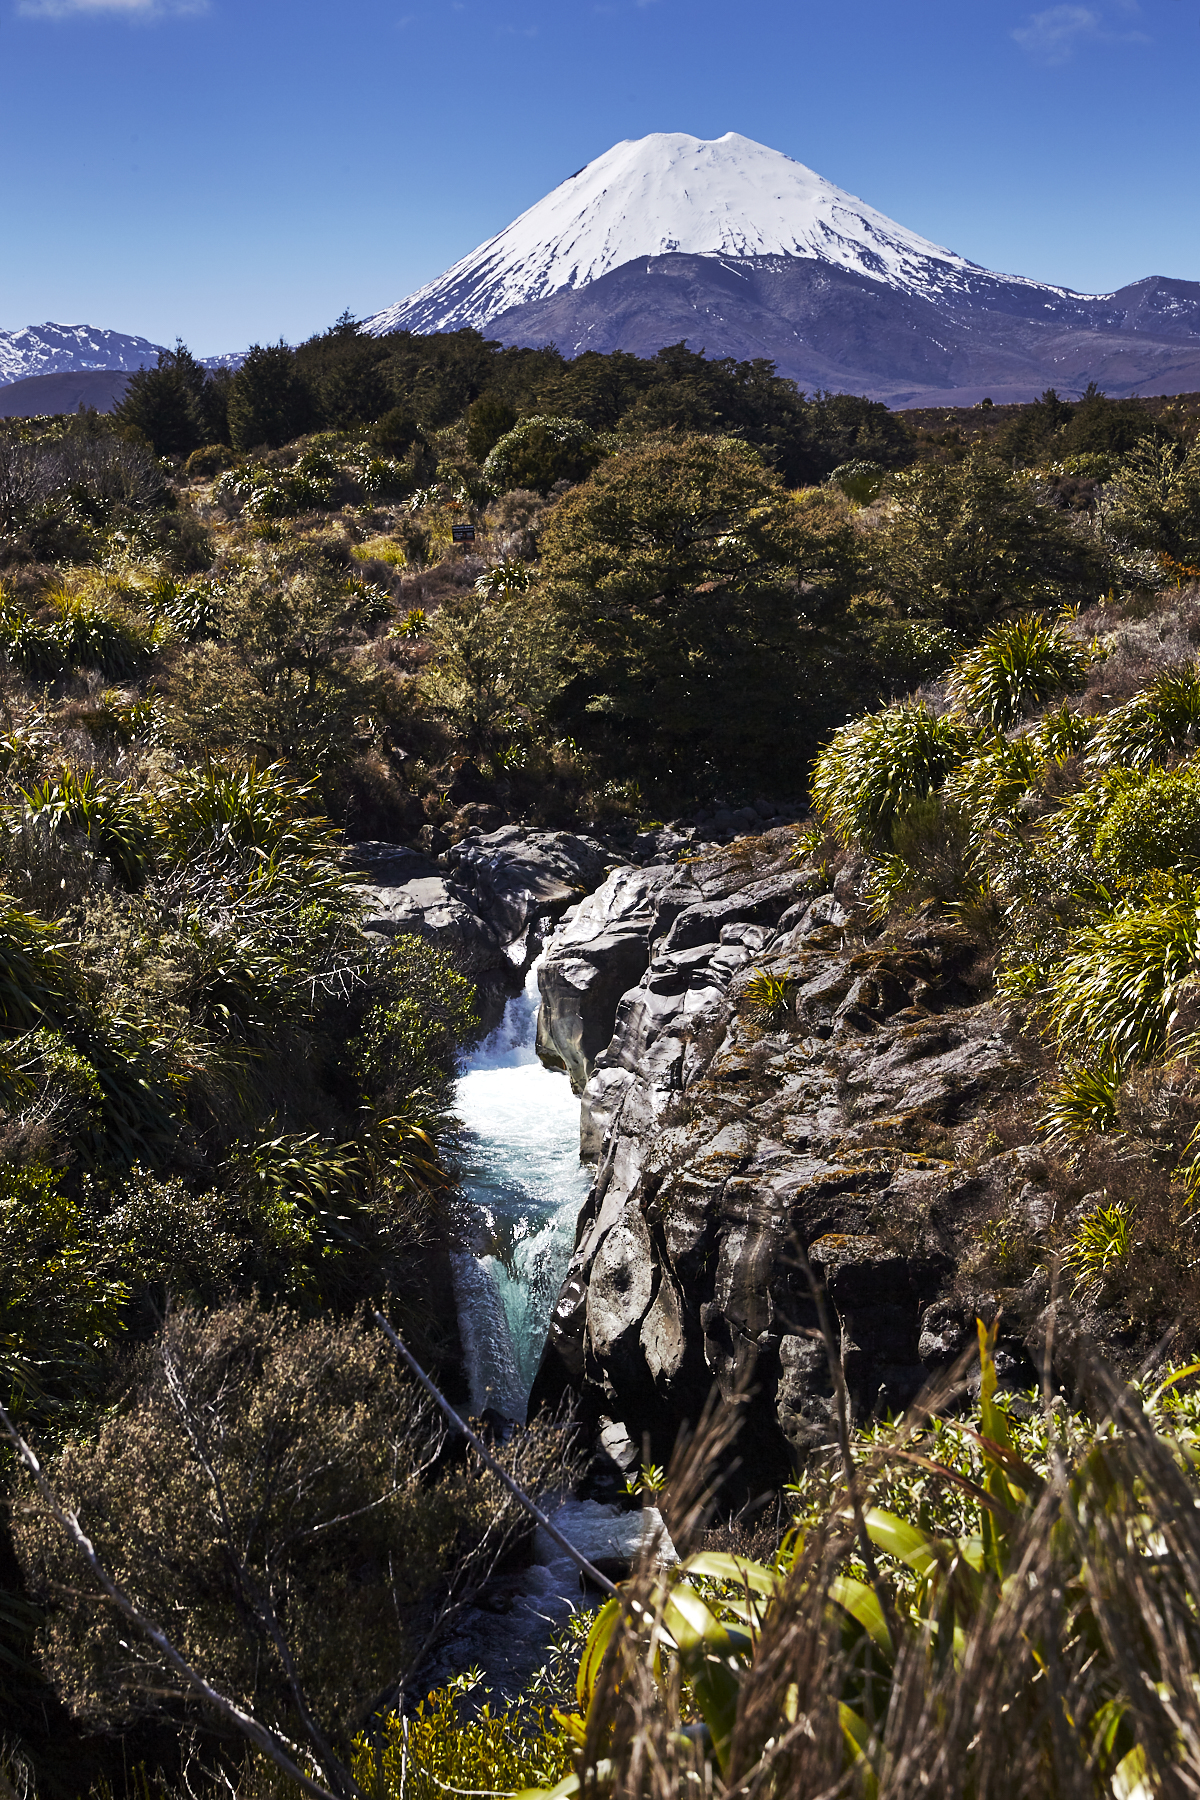 Drive to Taupo from Tongariro